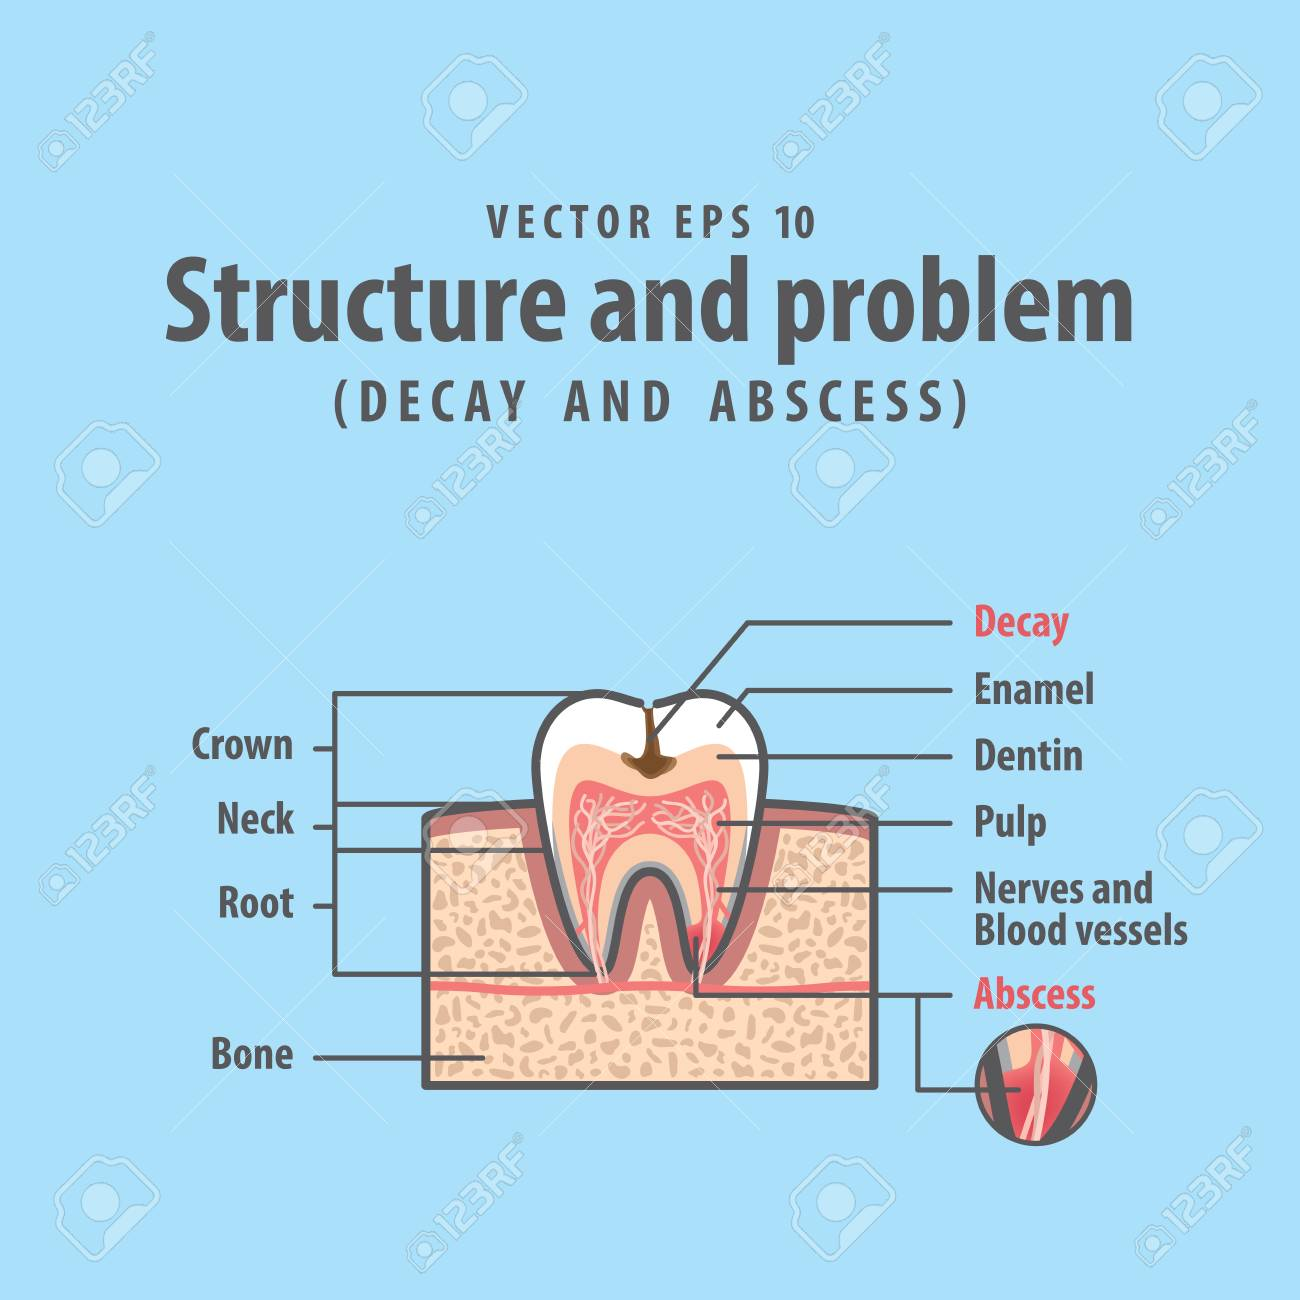 decay and abscess cross-section structure inside tooth diagram and chart  illustration vector on blue